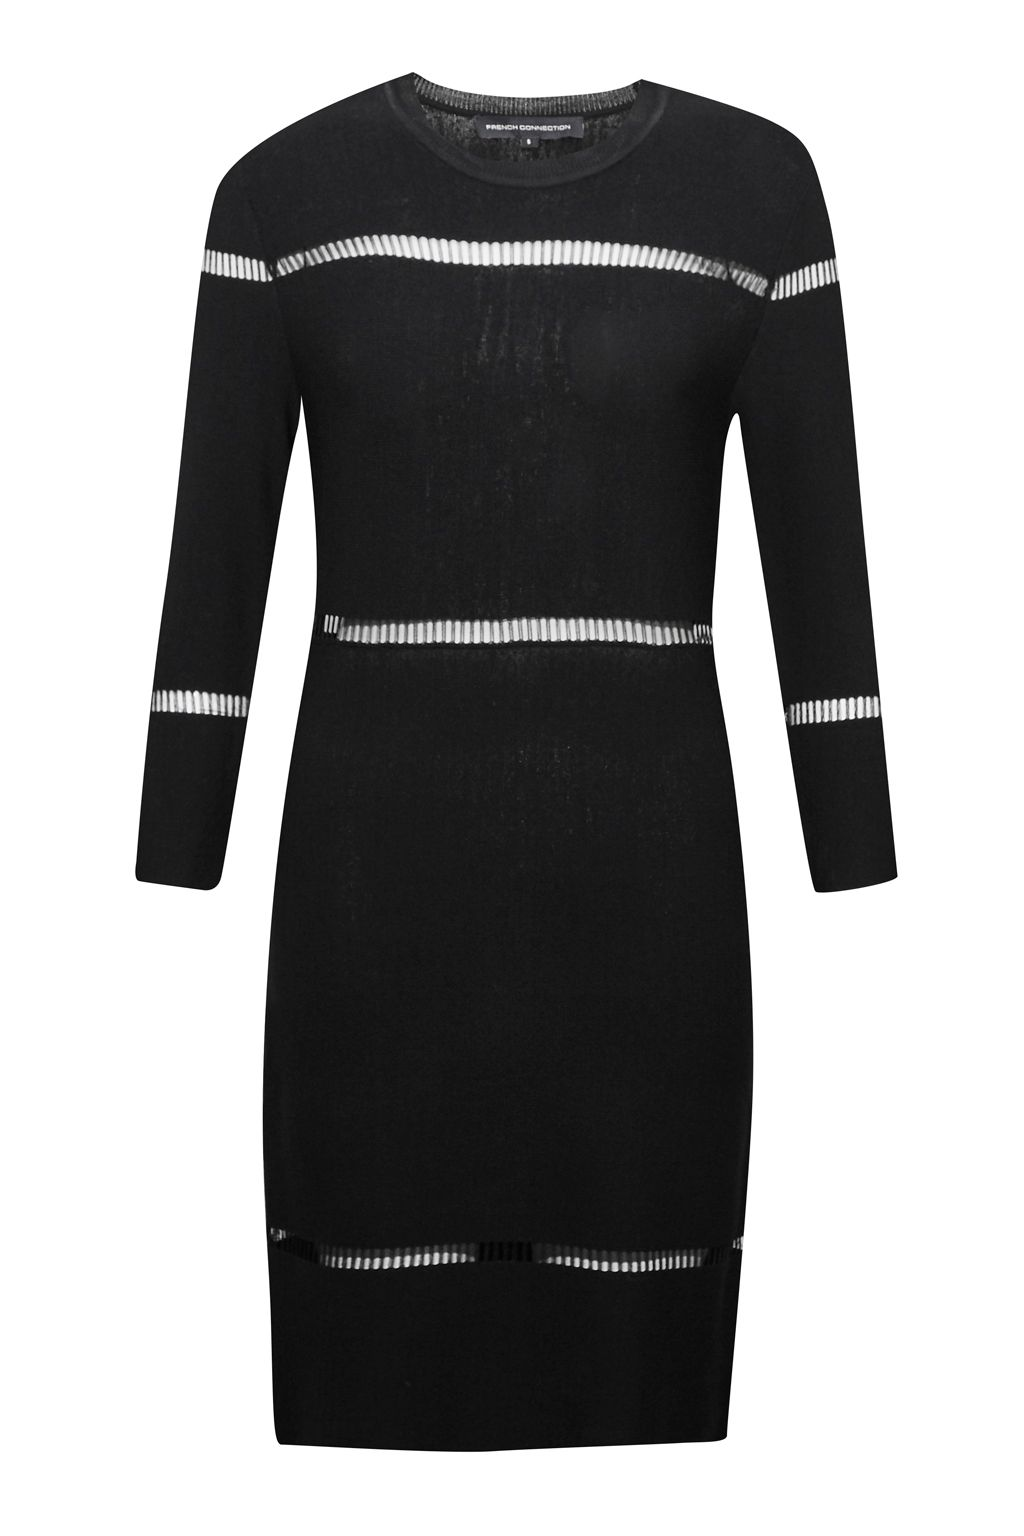 French Connection Danni Ladder Stitch Knitted Dress, Black